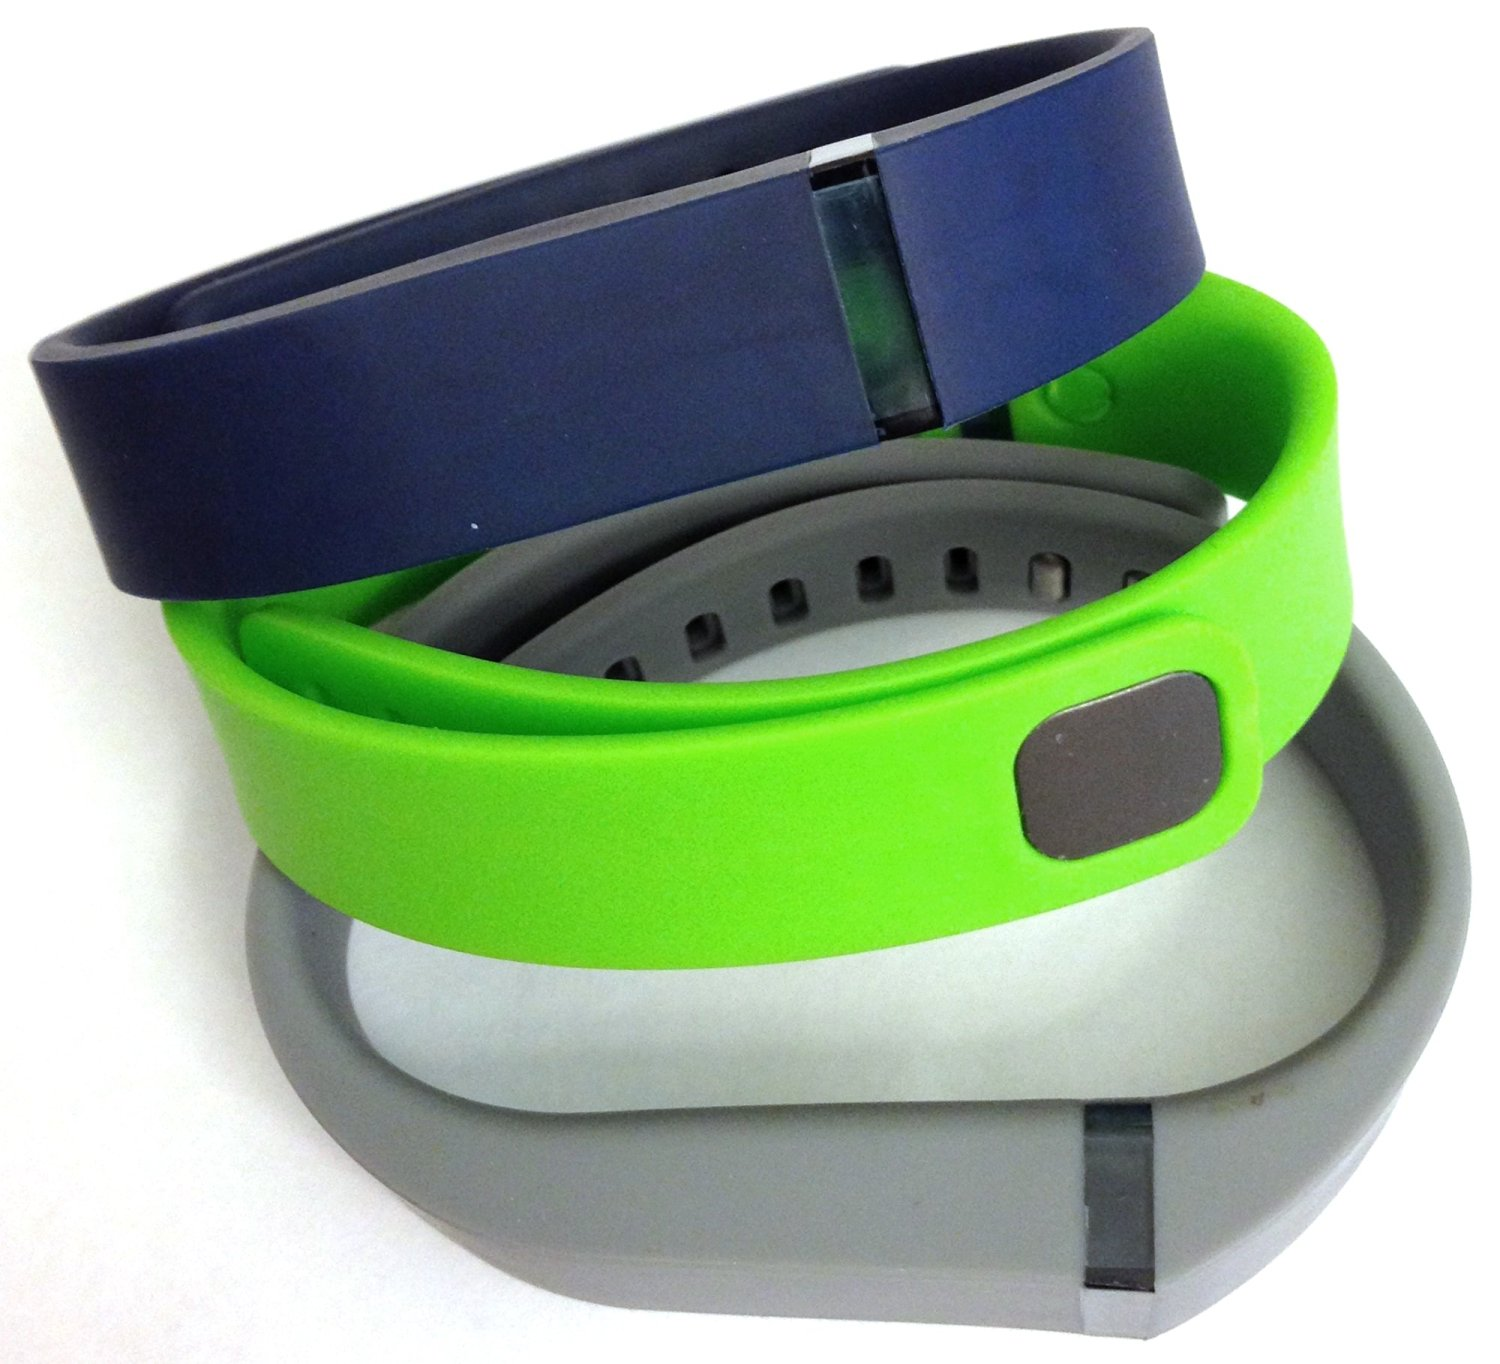 Set 3 Colors Large L 1pc Grey 1pc Green 1pc Navy Blue Replacement Bands With Clasp for Fitbit FLEX Only /No tracker/ Wireless Activity Bracelet Sport Wristband Fit Bit Flex Bracelet Sport Arm Band Armband